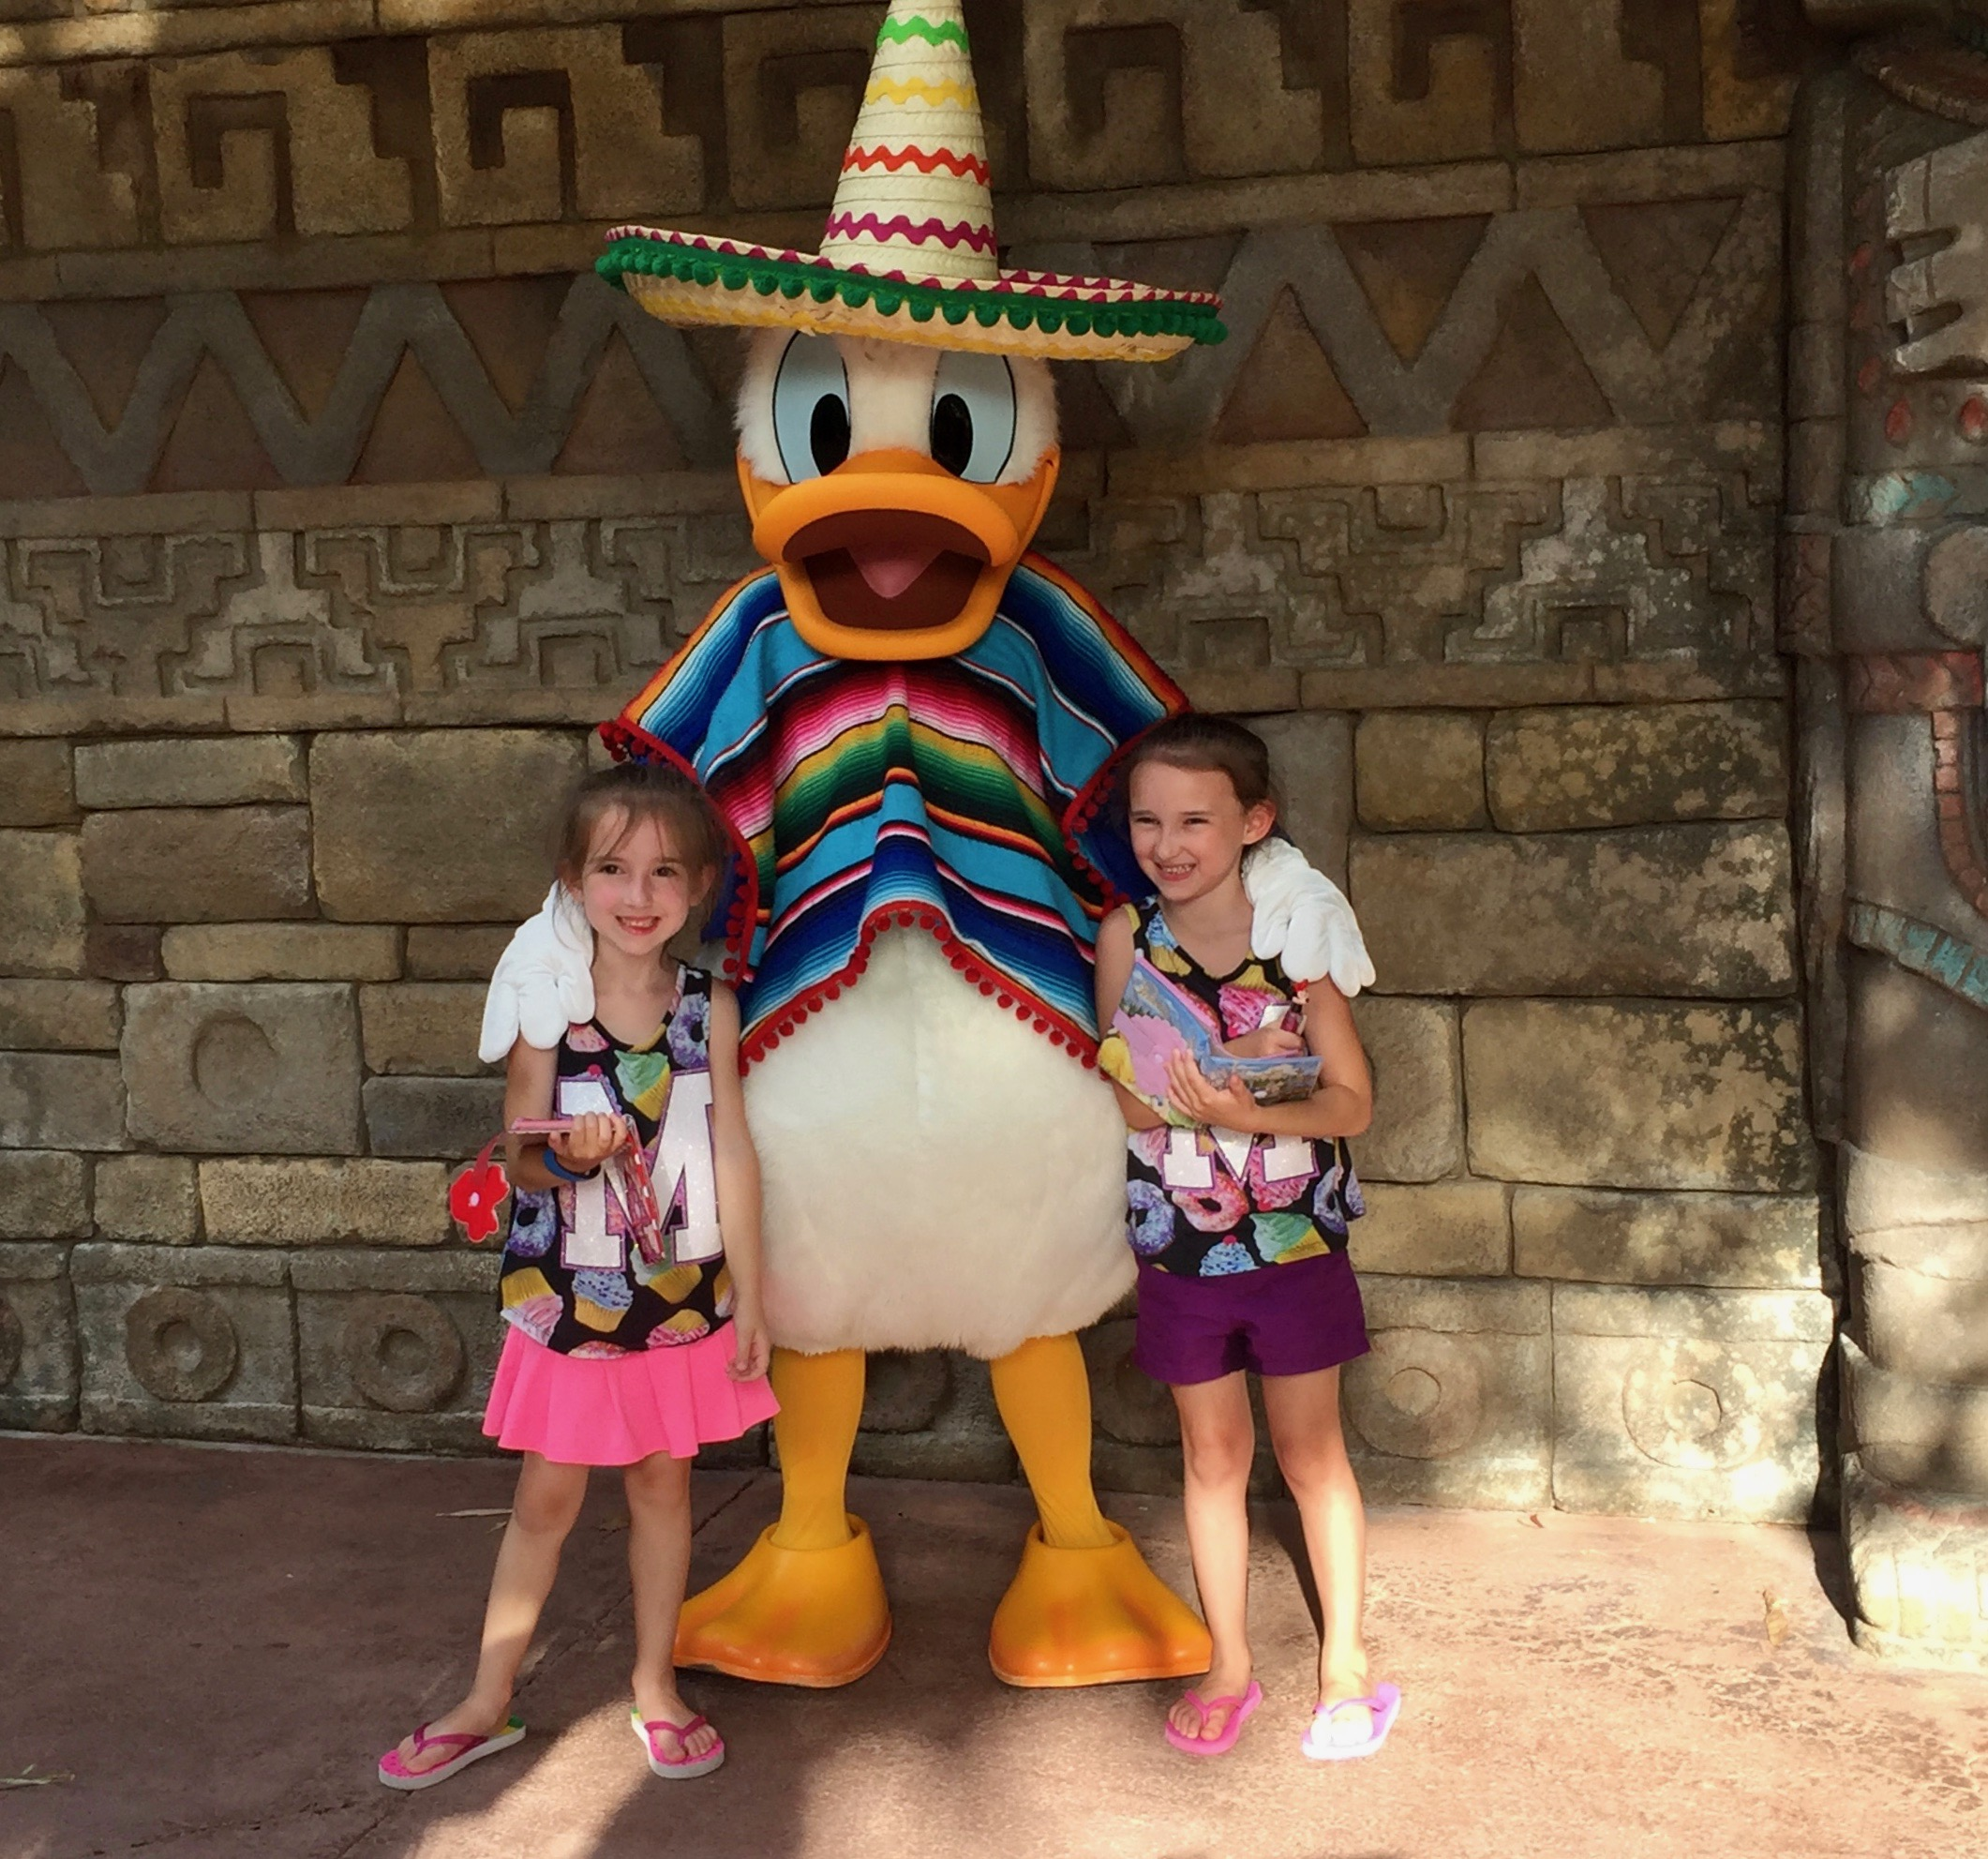 At Disney's Epcot in Mexico with Donald Duck